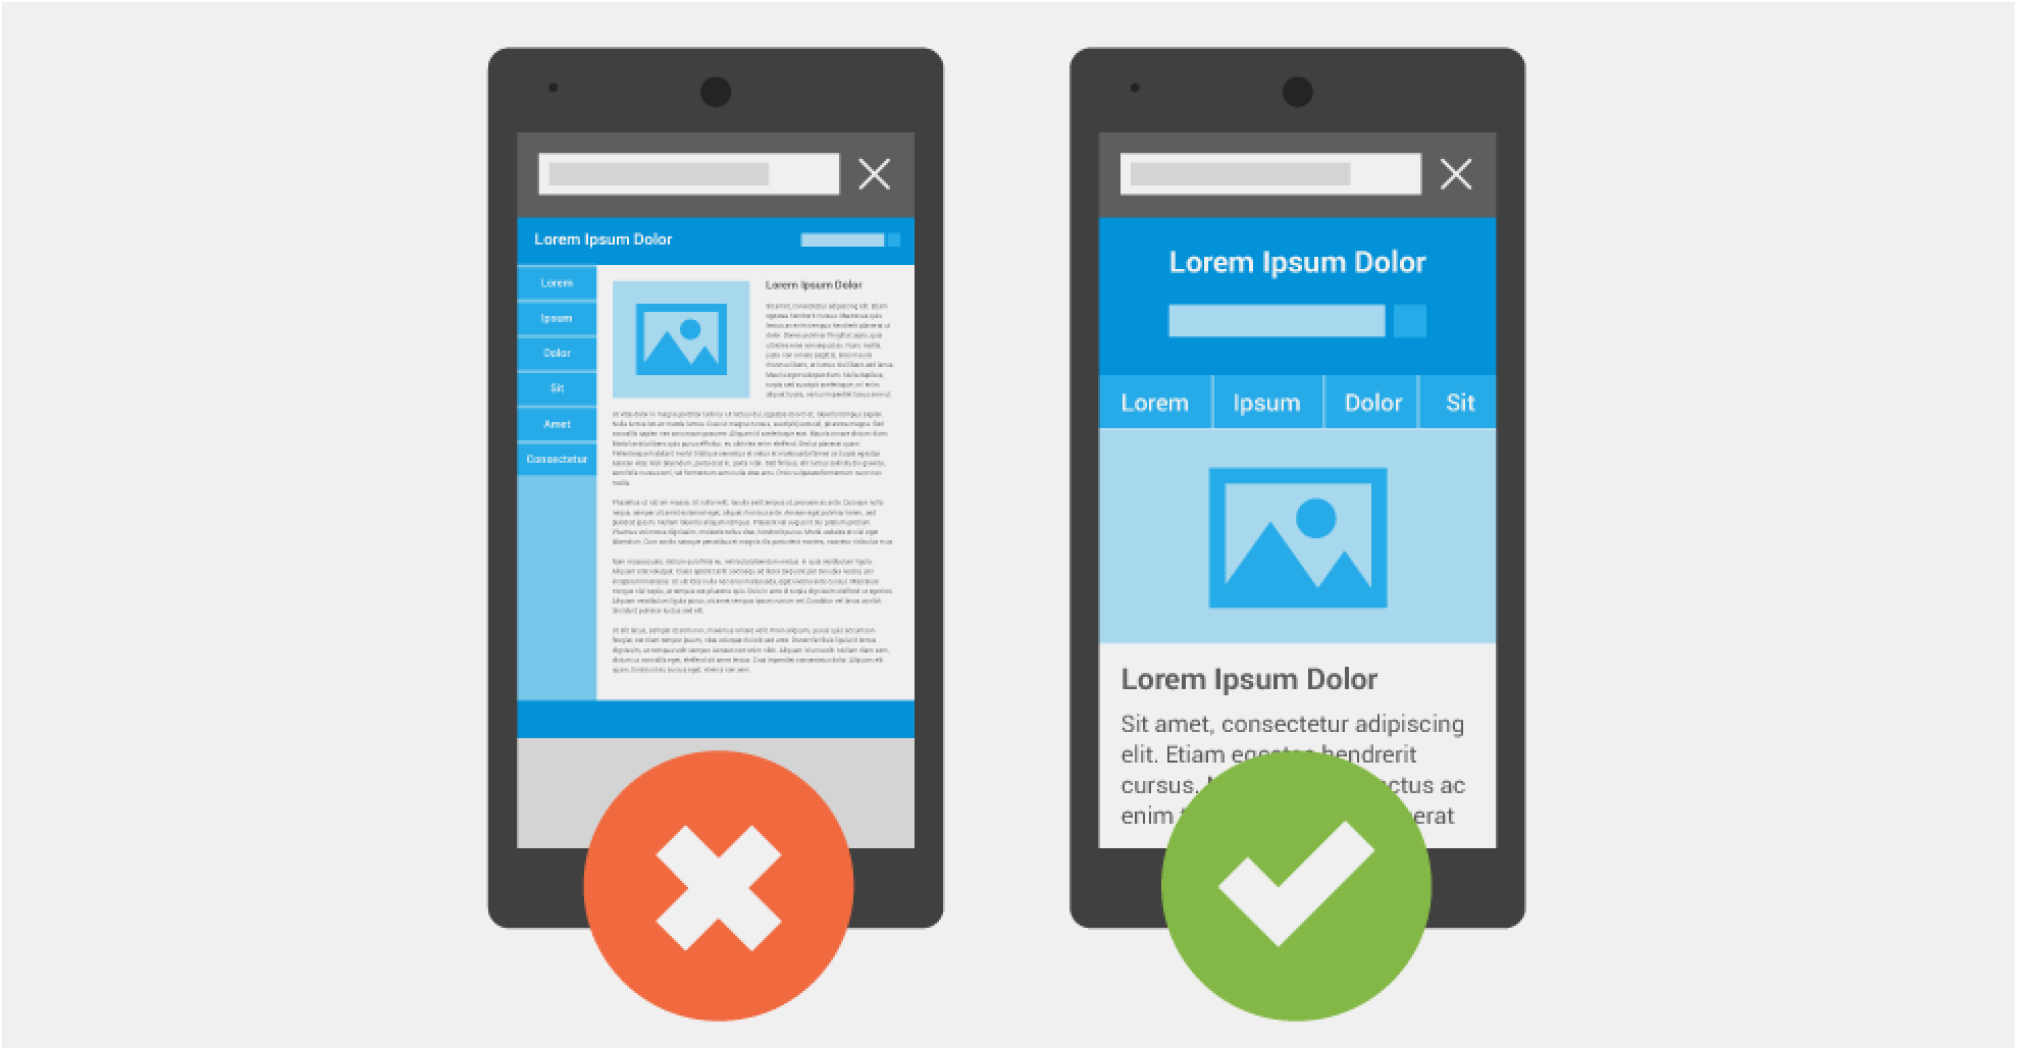 TNNG:Digital Agency | Why Responsive Design is Important for